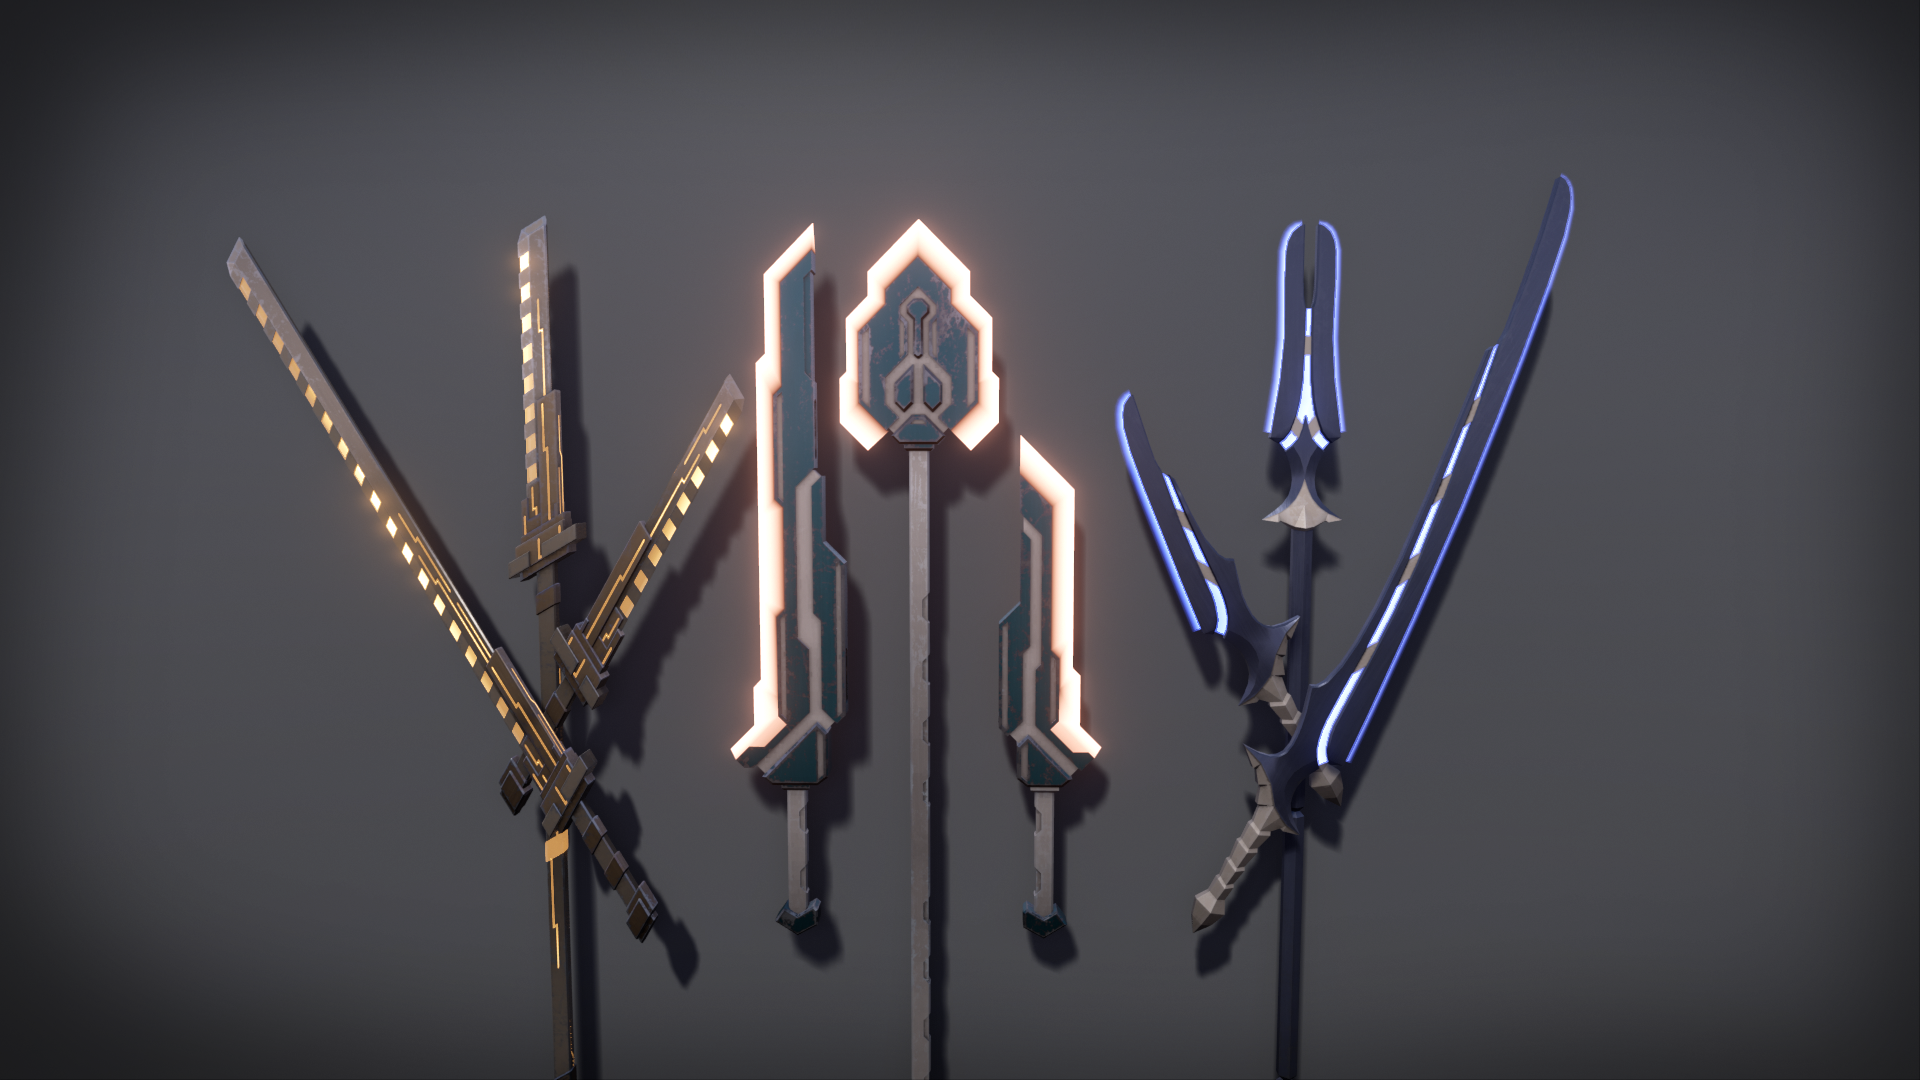 Scifi Melee Weapons by DC Assets